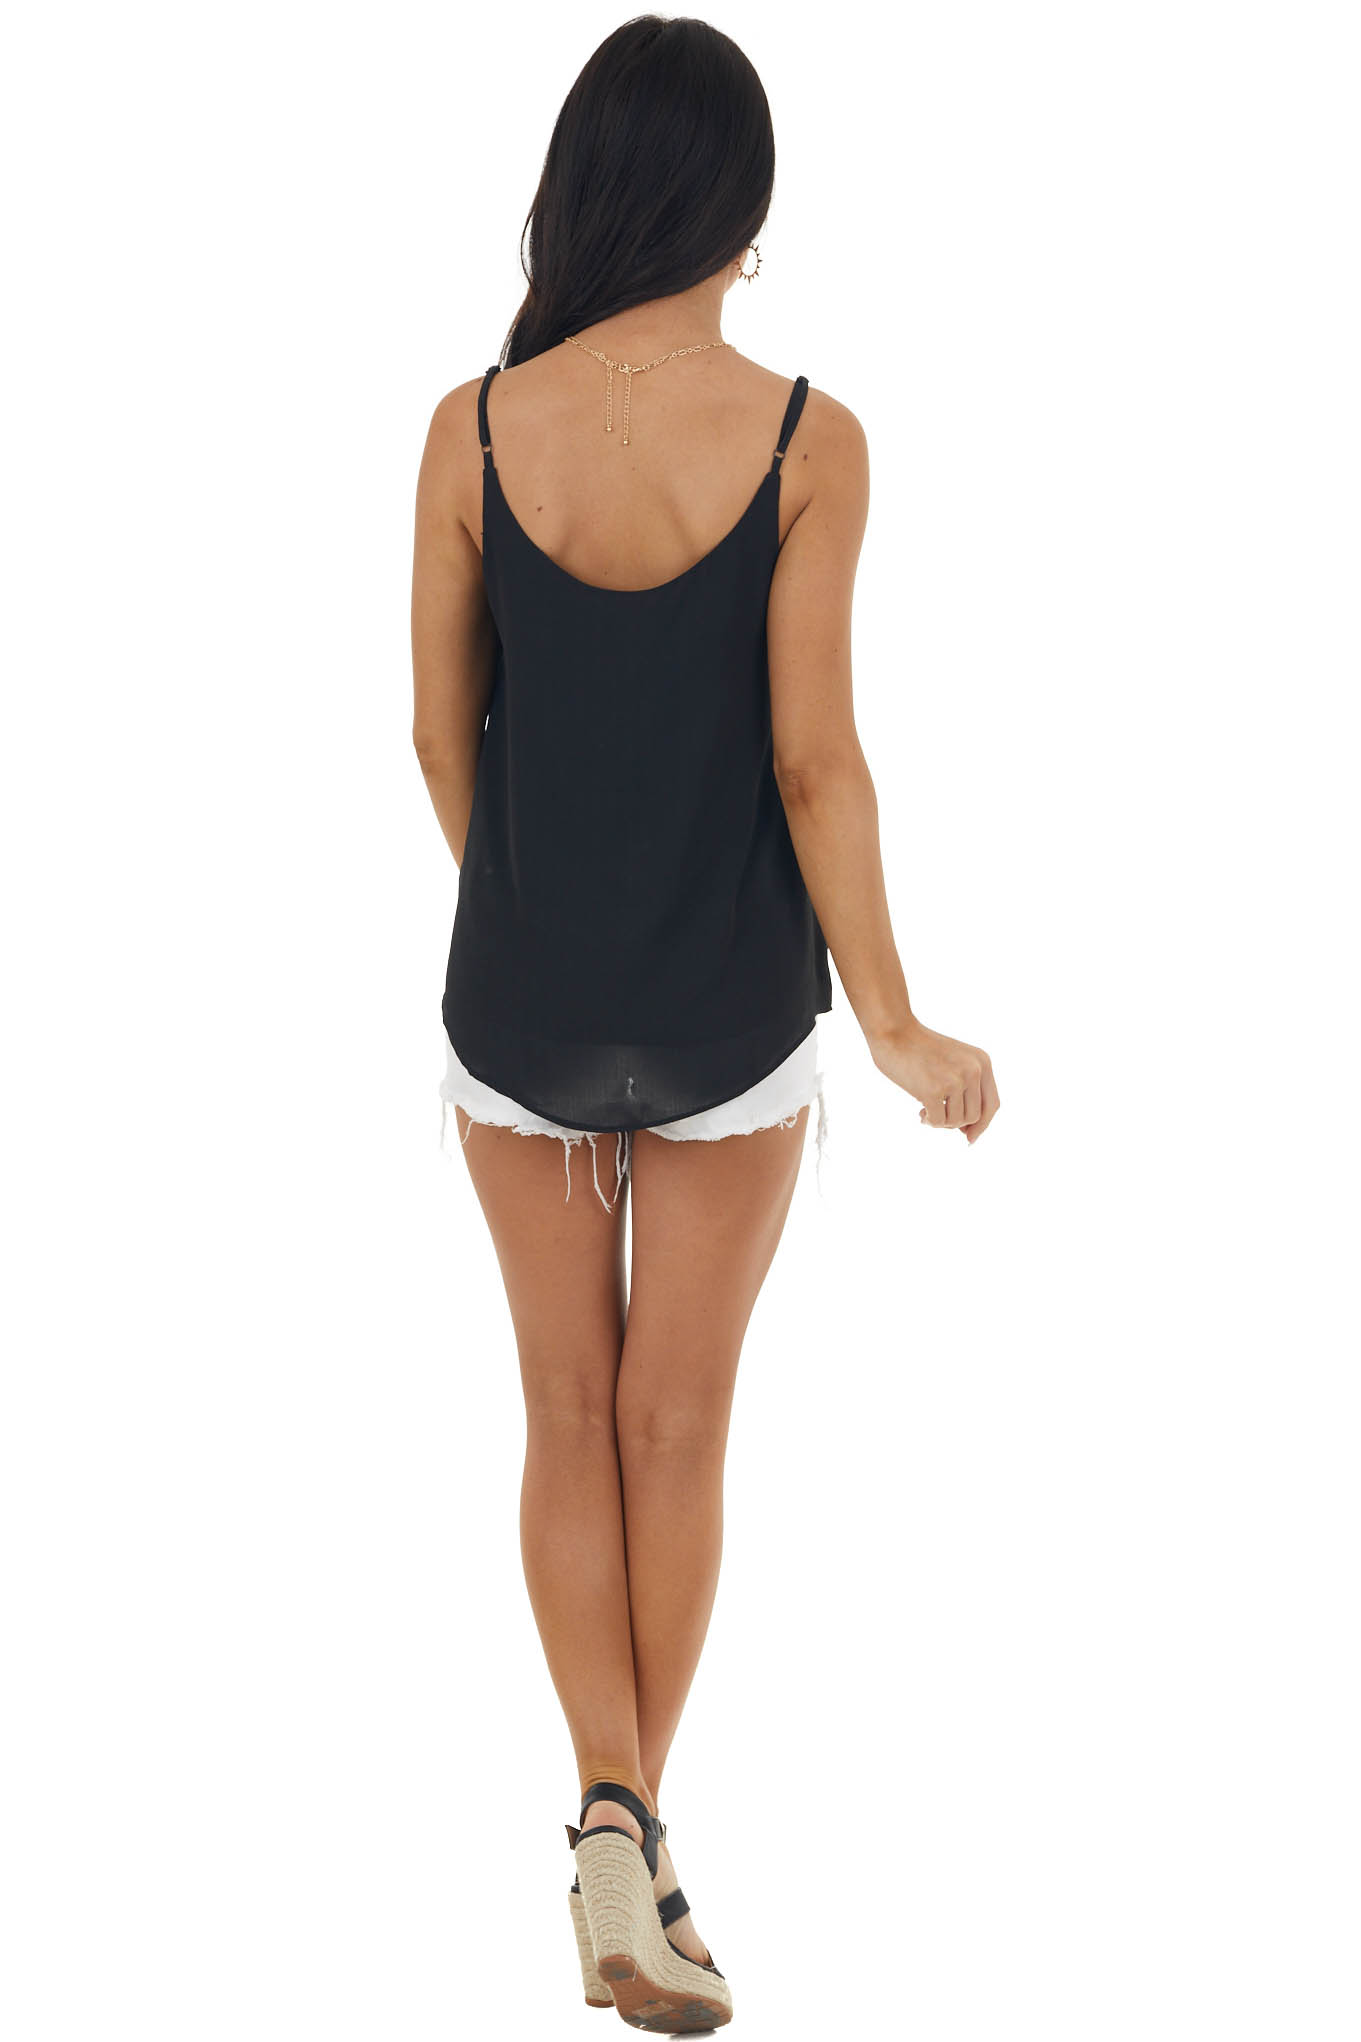 Black Tank Top with V Neck and Mesh Trim